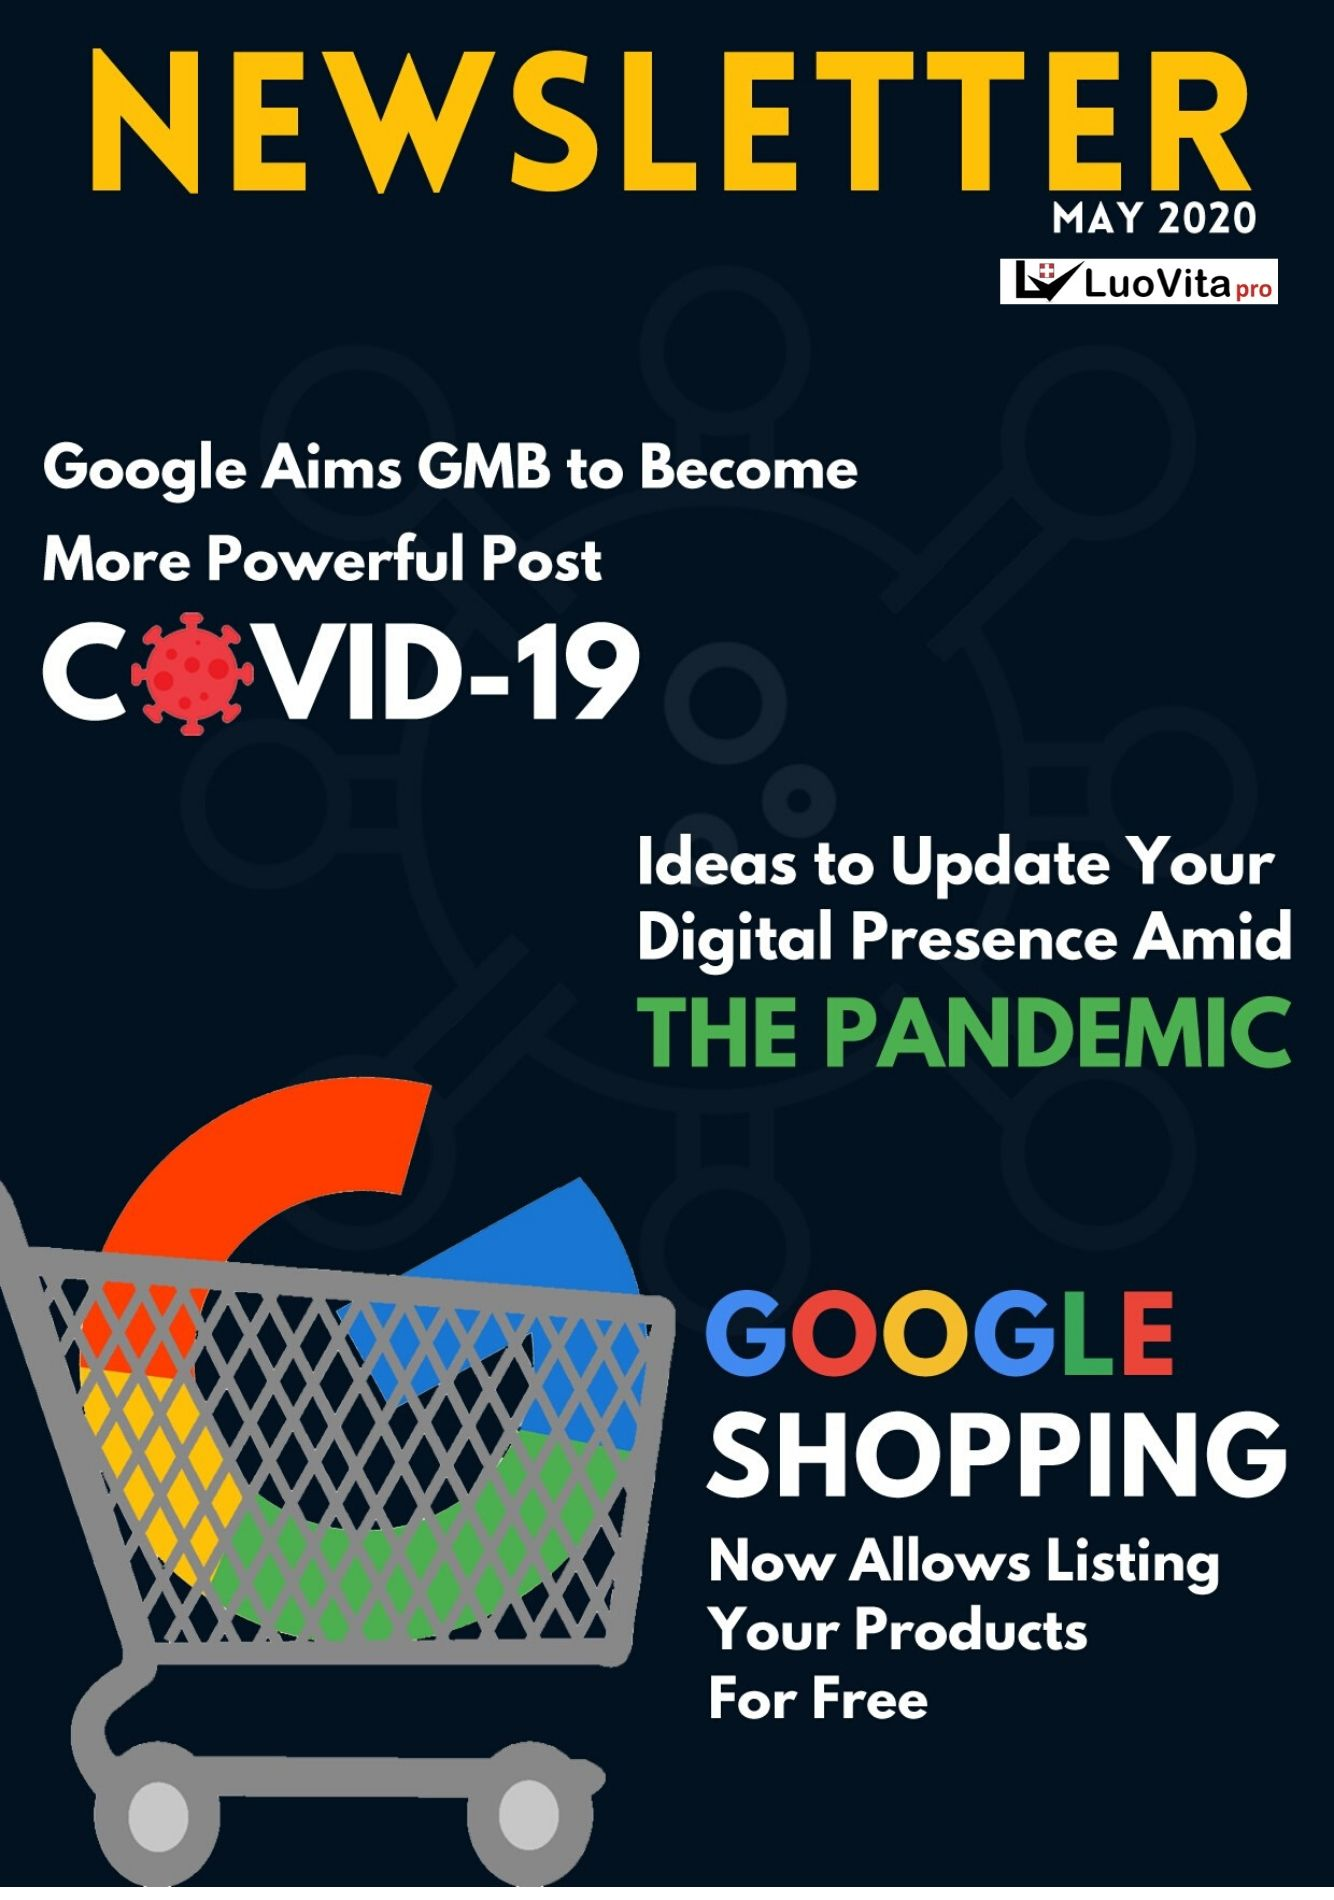 Google Aims GMB (Google My Business) to Become More Powerful Post COVID-2019 - May 2020 Newsletter. Google shopping now allows listing your products for free. Here are ideas to update your digital presence amid the COVIC-19 Pandemic.